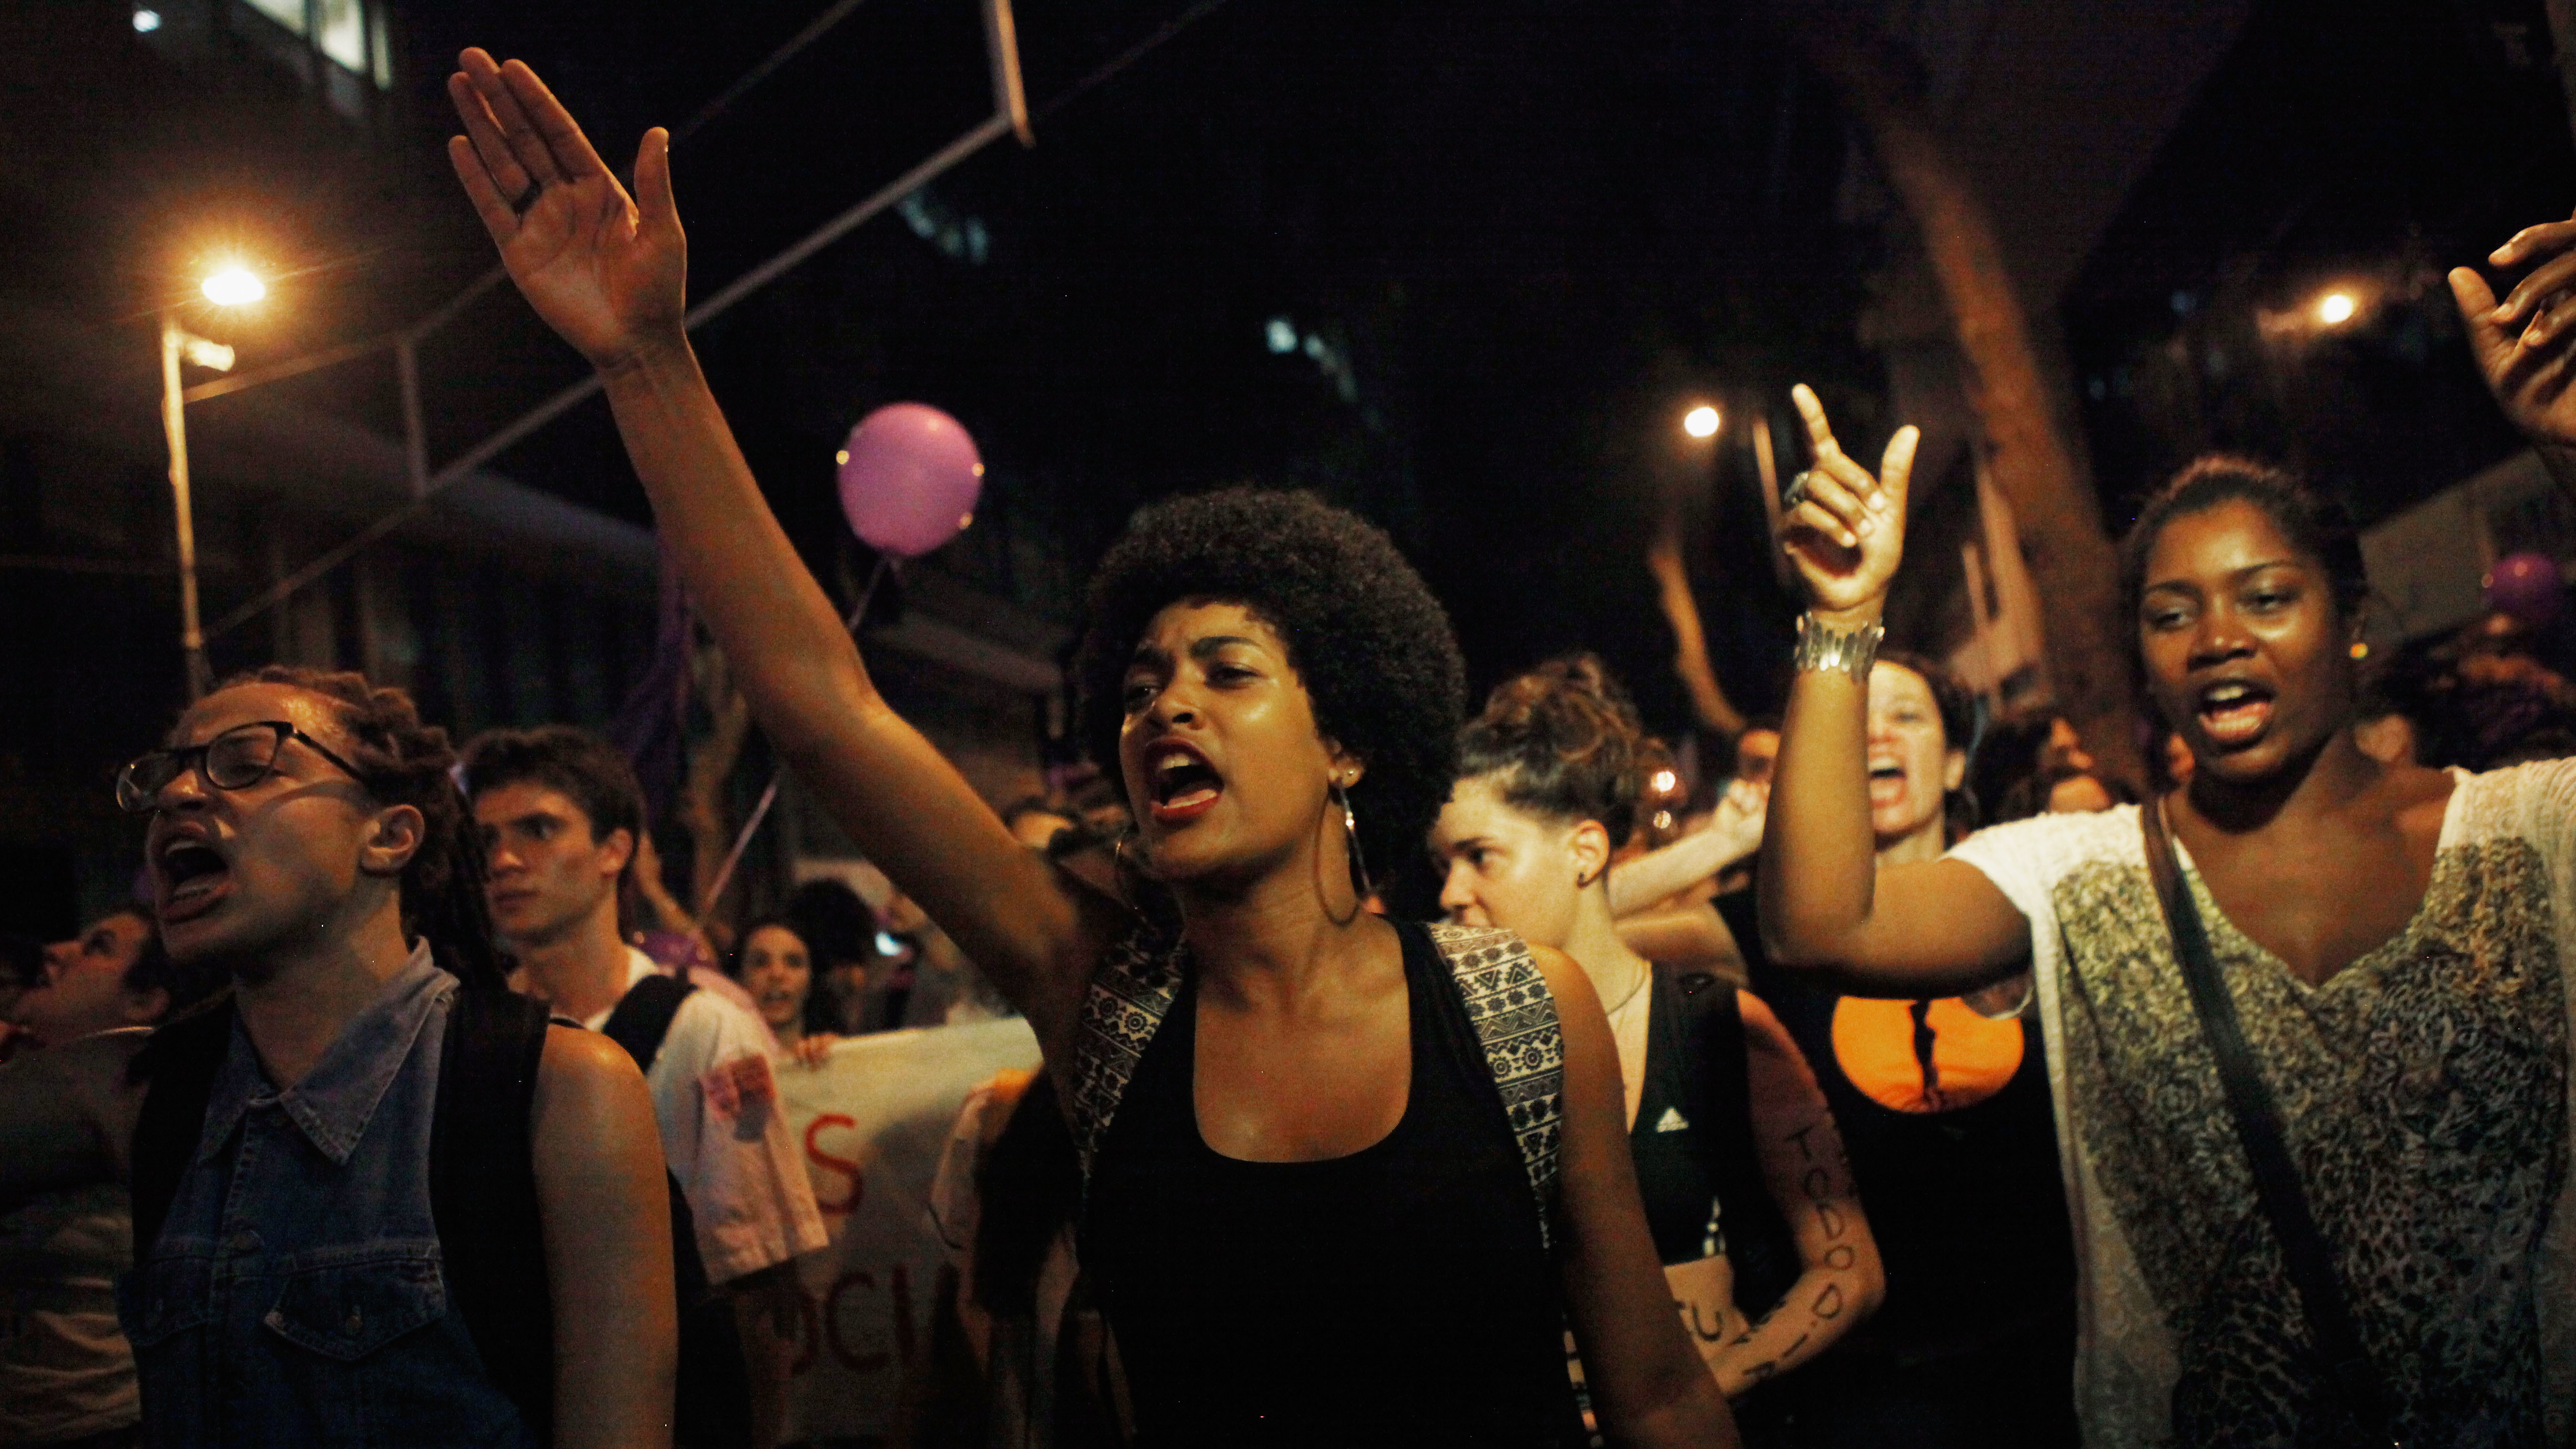 For Brazil's Women, Laws Are Not Enough To Deter Rampant Violence